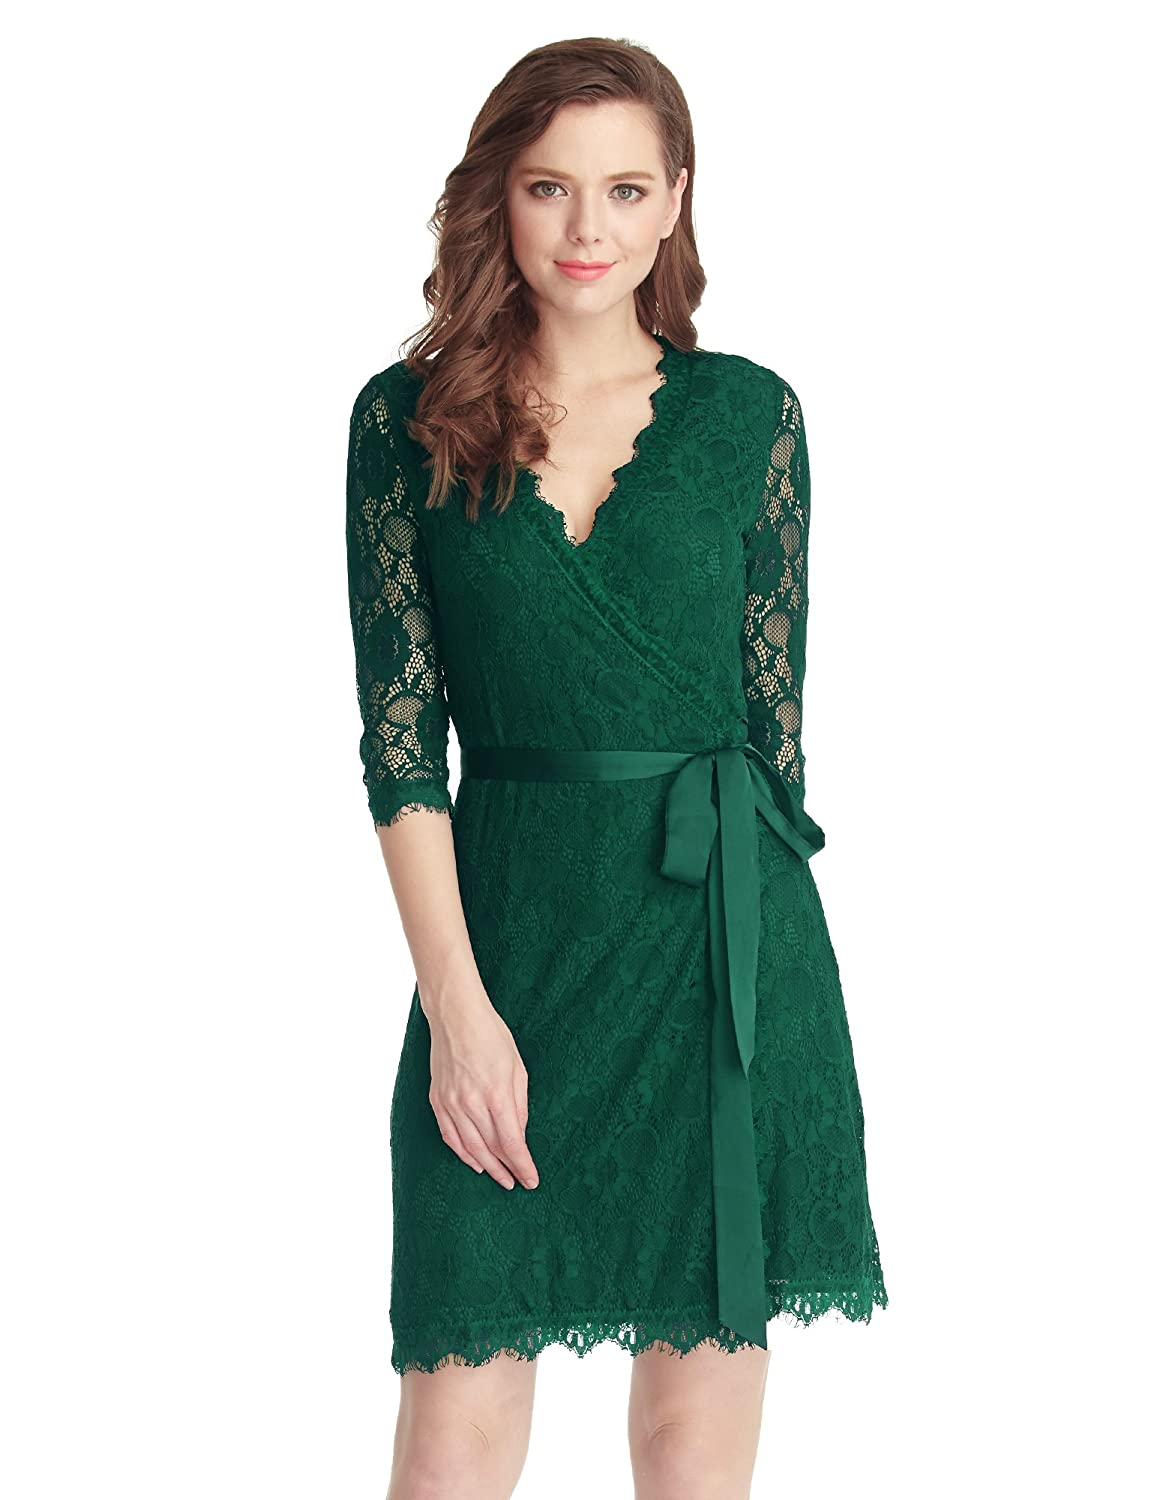 Into your fashion game with amazing party dresses cocktail dresses day - Amazon Com Grapent Women S Lace 3 4 Sleeves Midi Business Cocktail Short Formal Wrap Dress Clothing